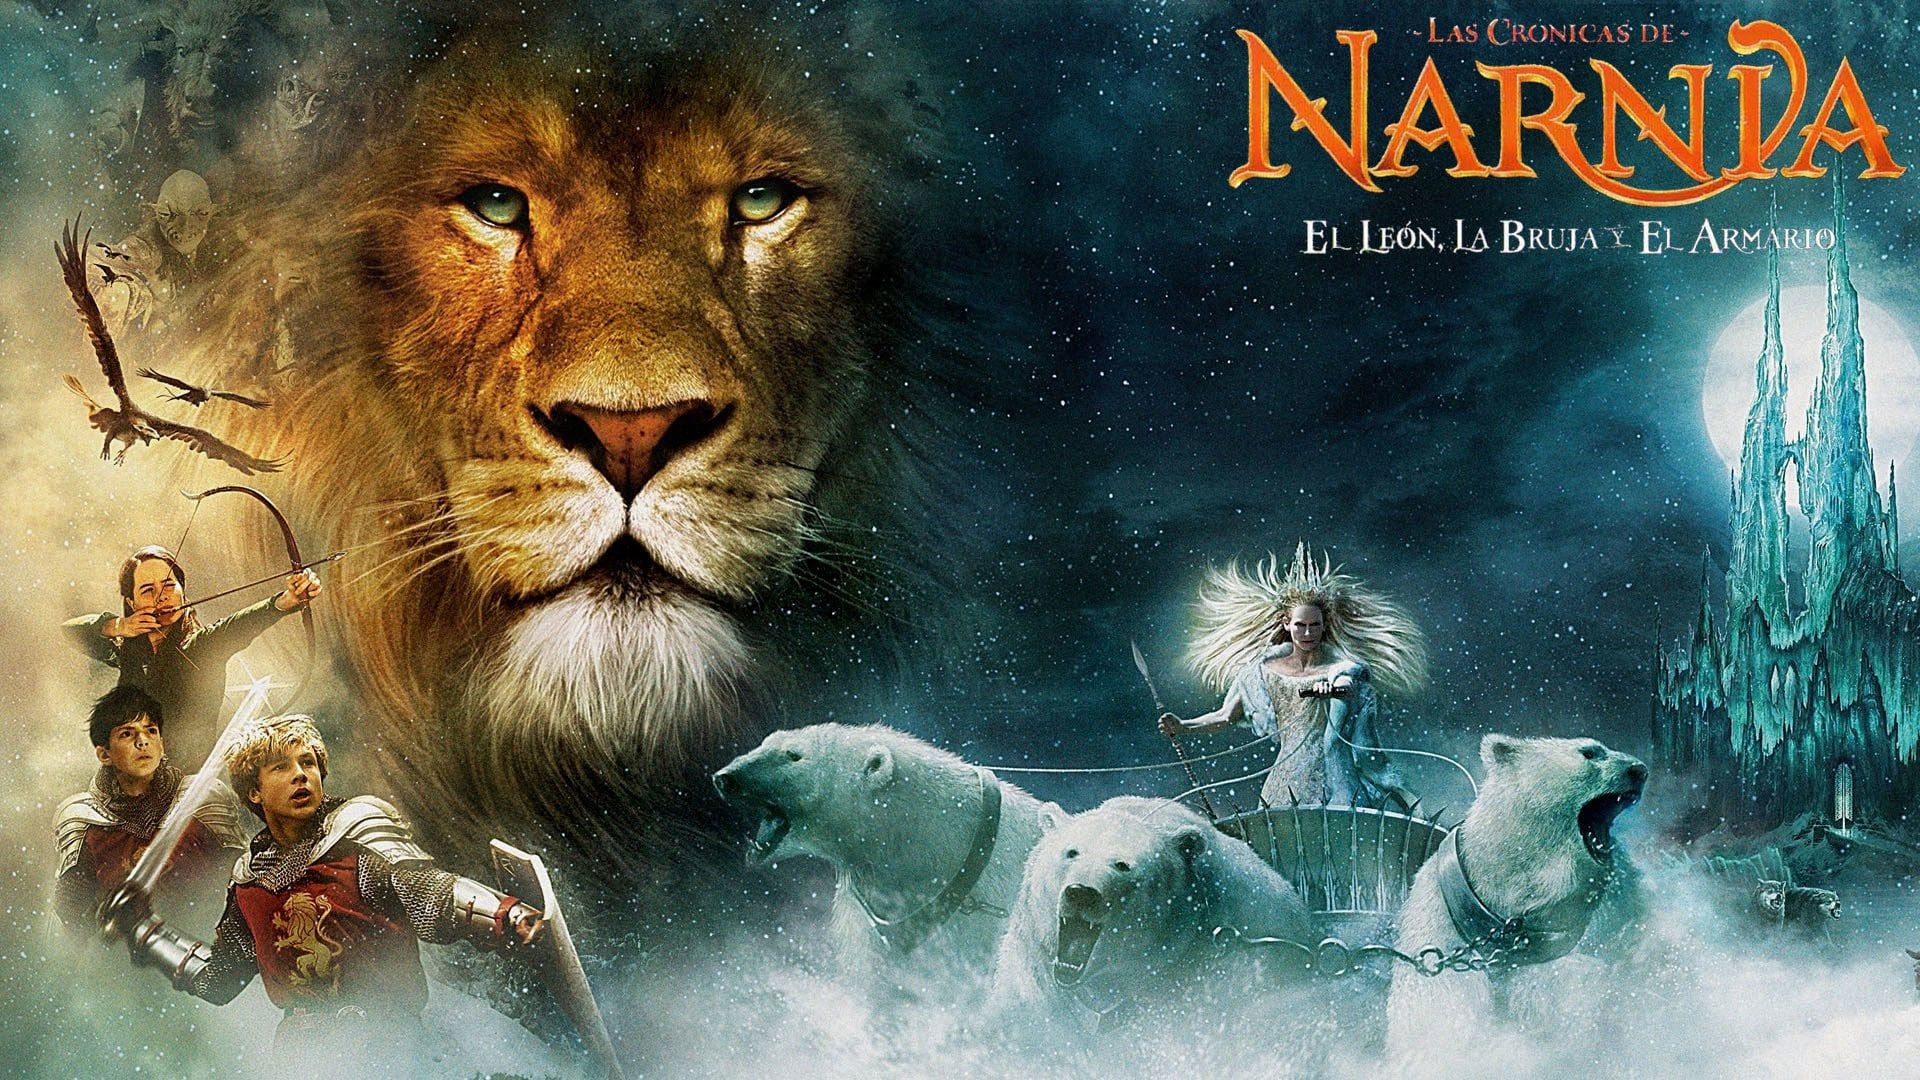 Le Cronache Di Narnia Il Leone La Strega E L Armadio 2005 Streaming Ita Cb01 Film Completo Italiano A Narnia Movies Lion Witch Wardrobe Chronicles Of Narnia